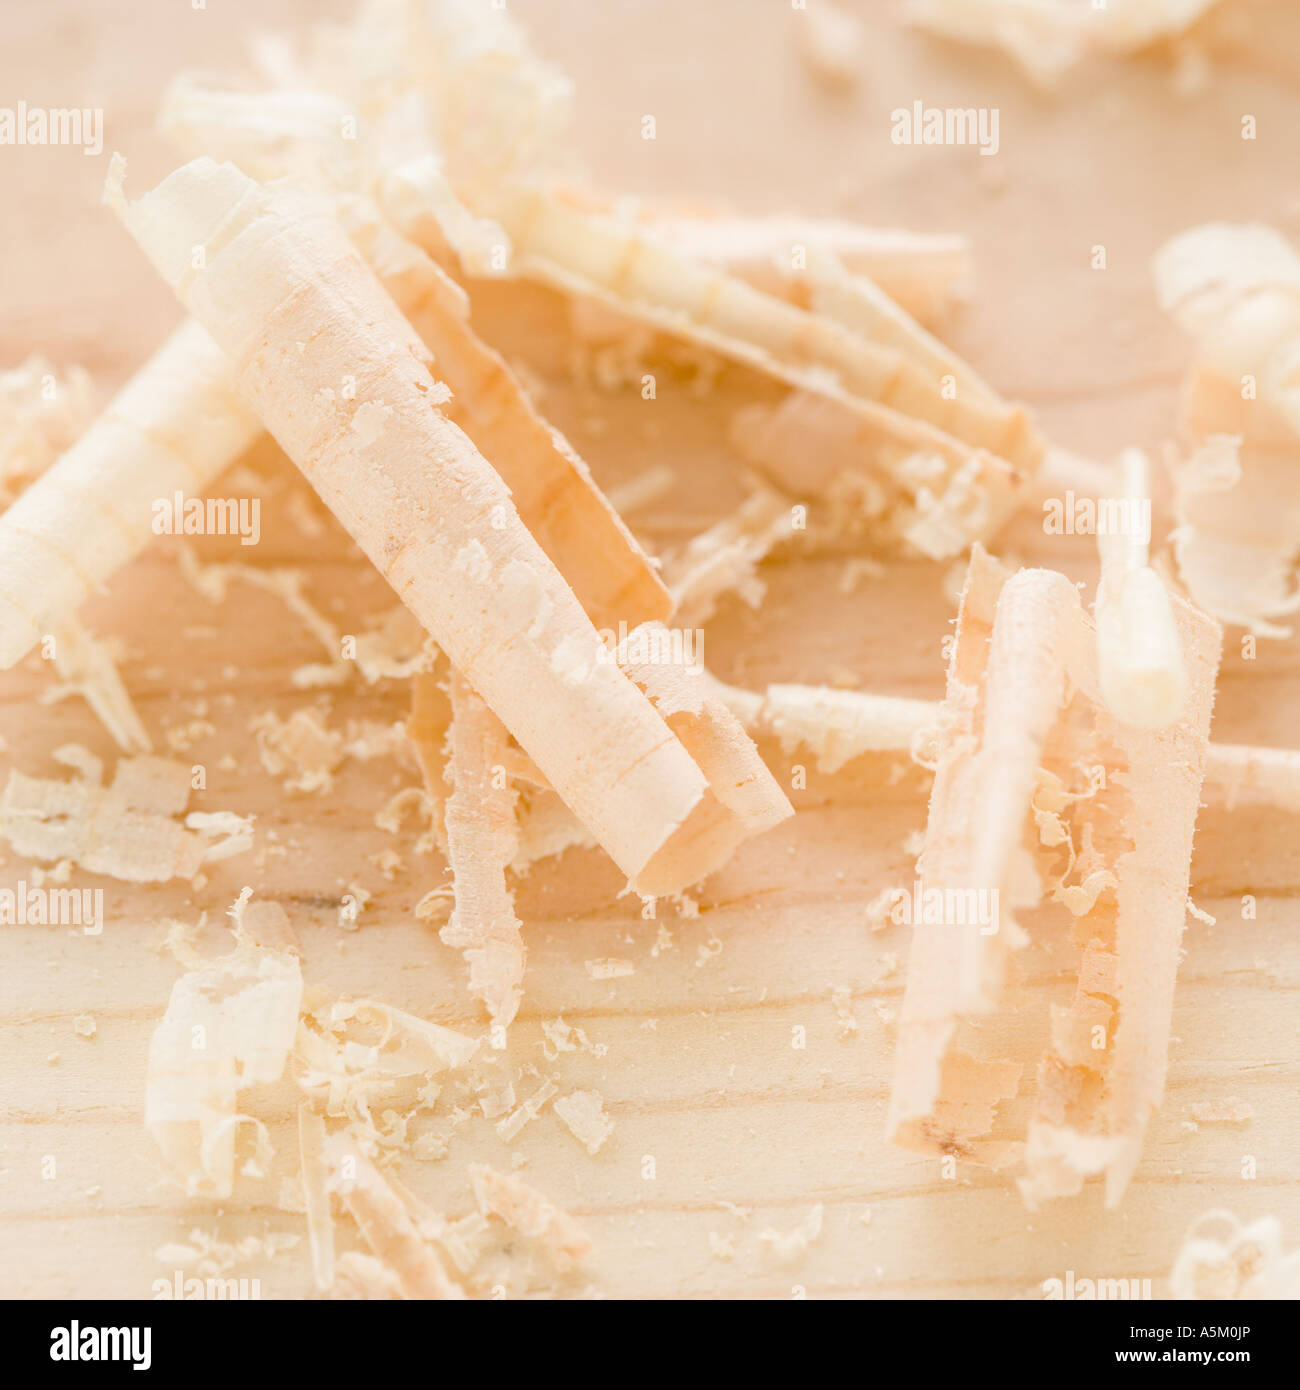 Close up of wood shavings Stock Photo